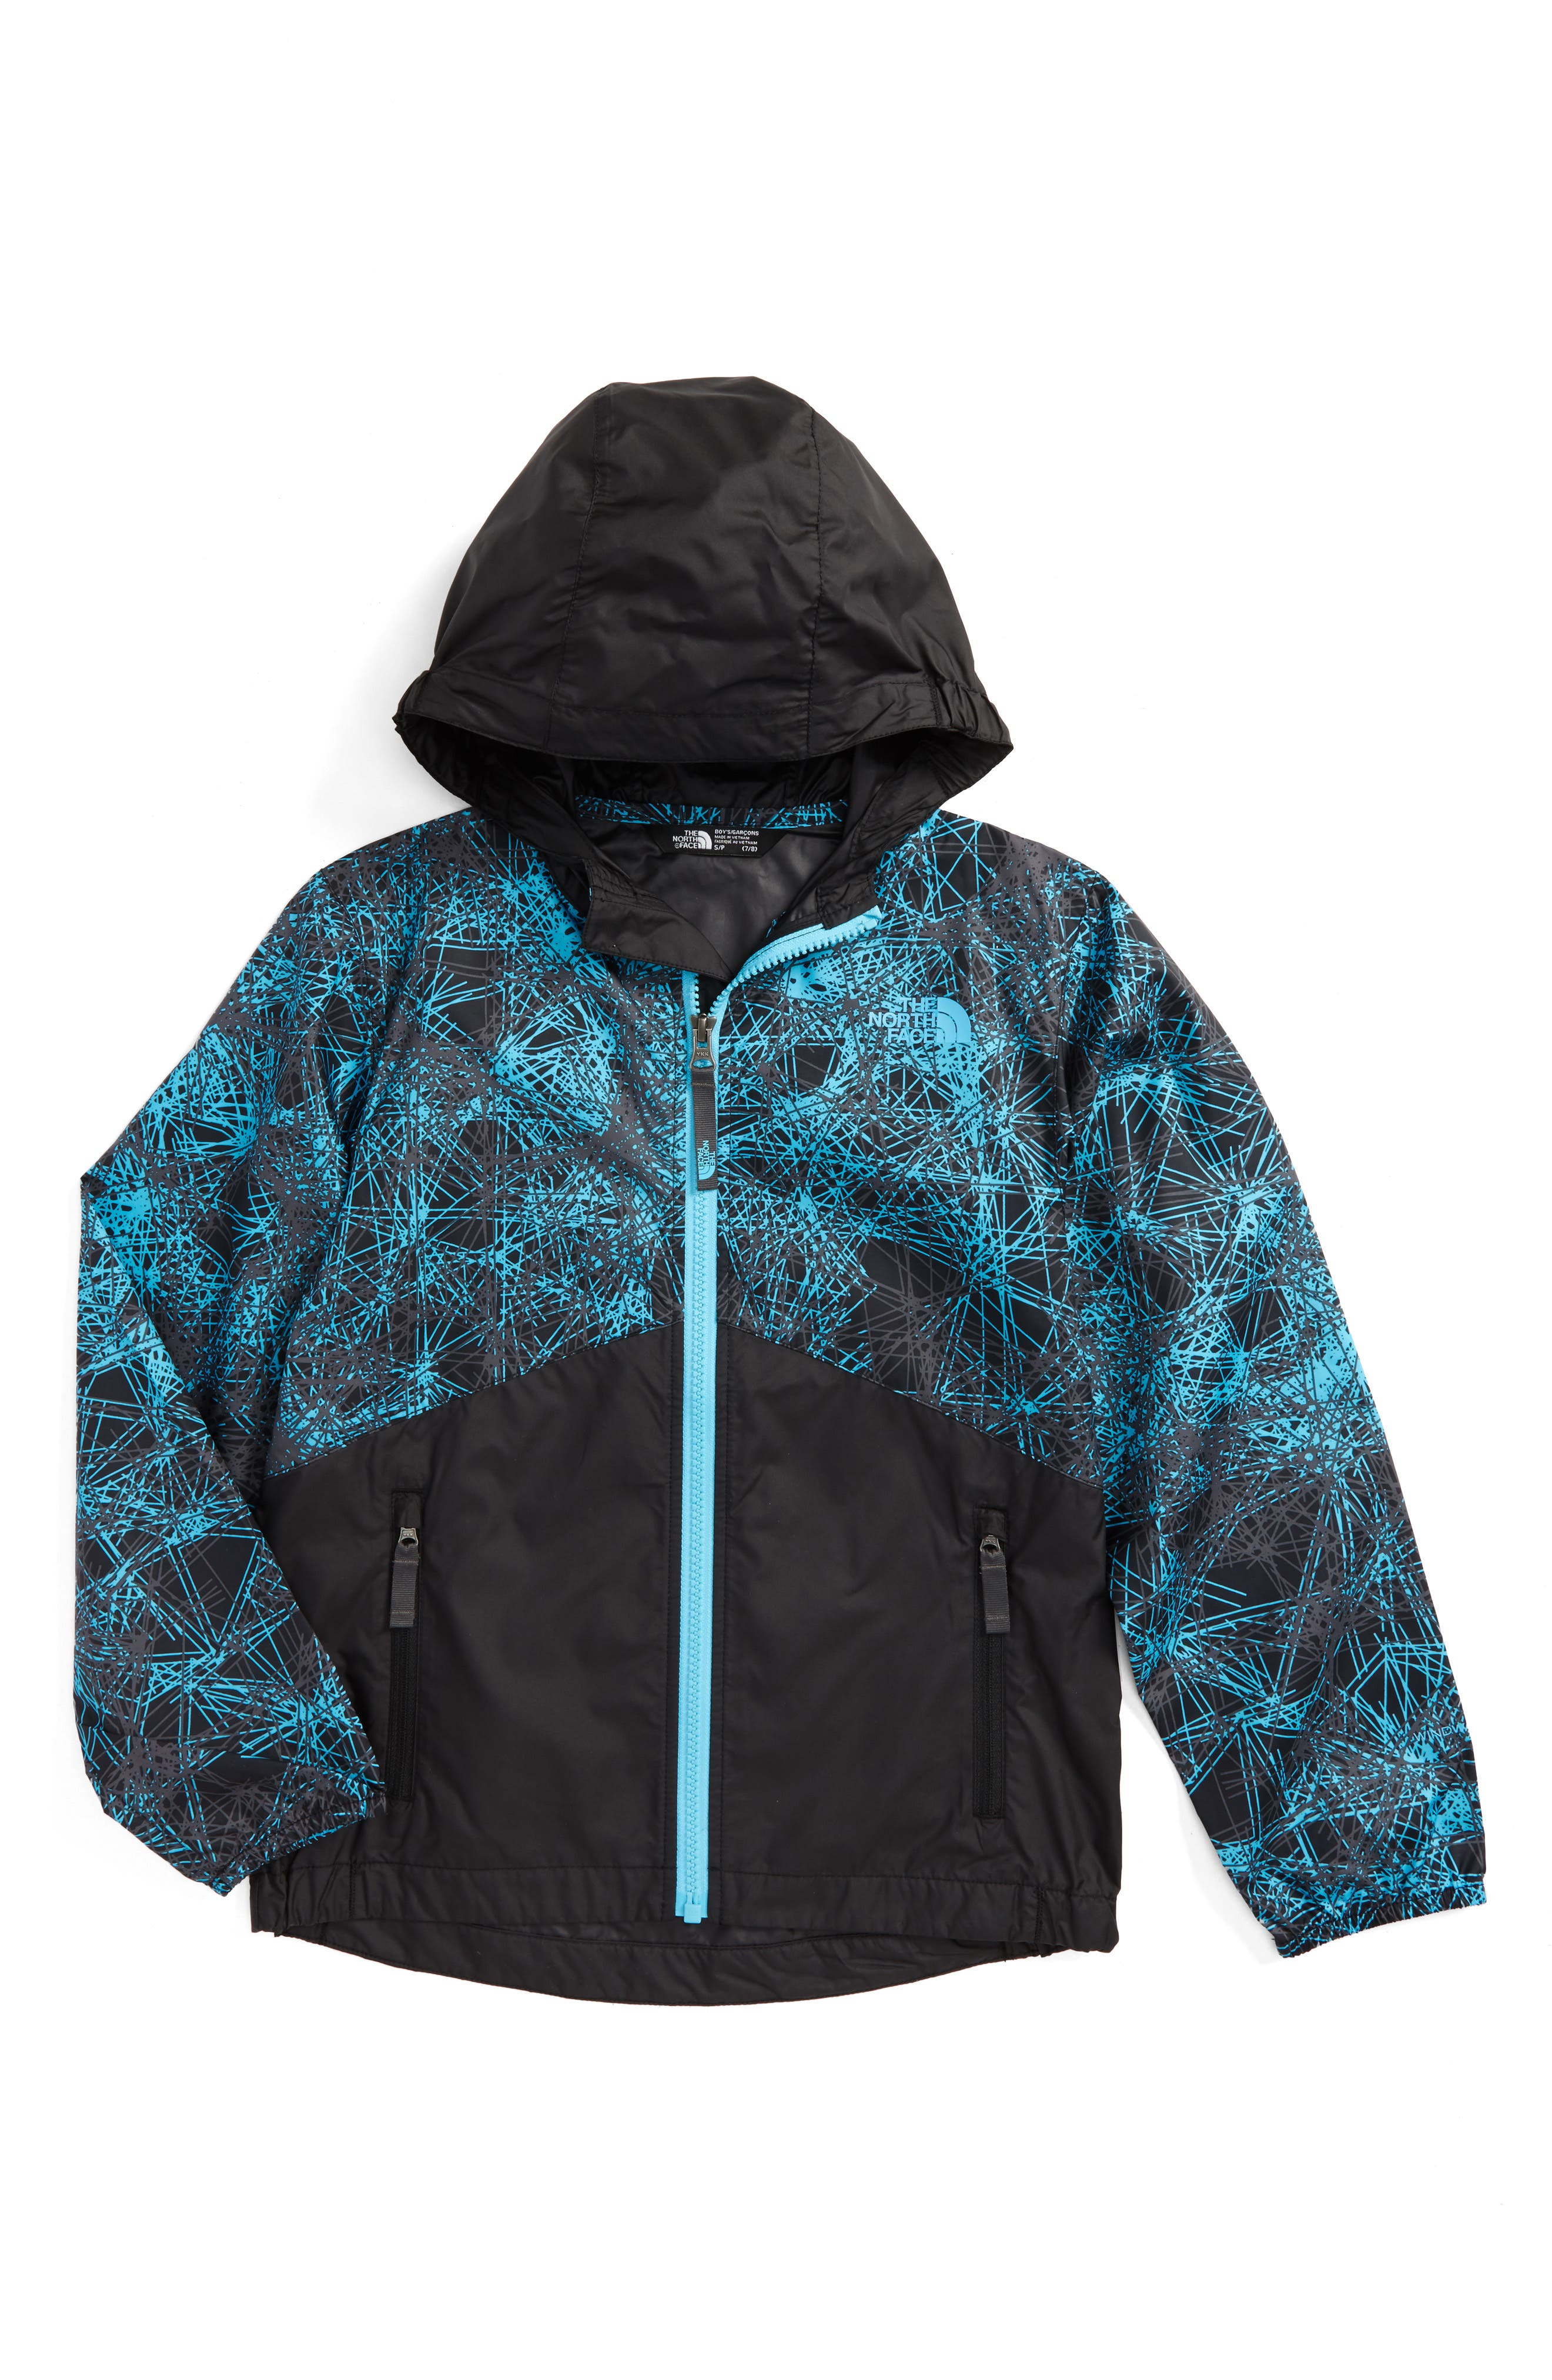 THE NORTH FACE 'Flurry' Colorblock Hooded Water Resistant